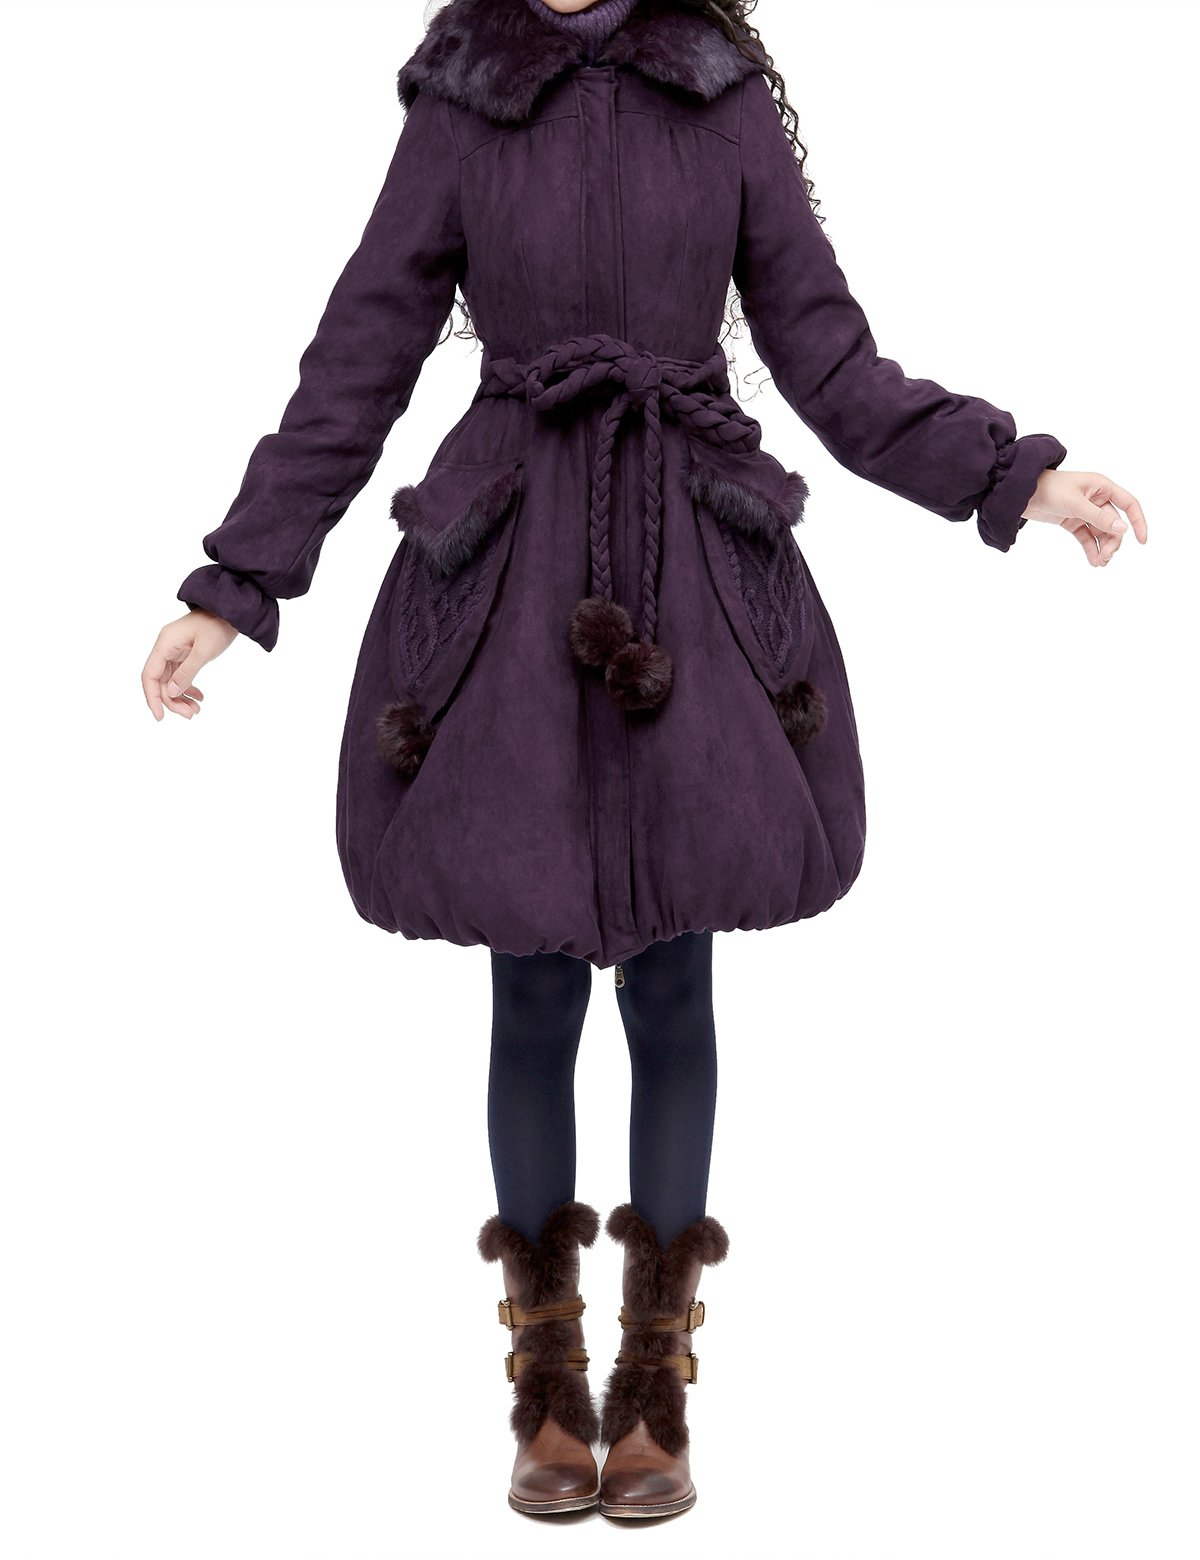 Artka Women's Vintage Casual Long Quilted Parkas Winter Coat with Hood Size L by Artka (Image #2)